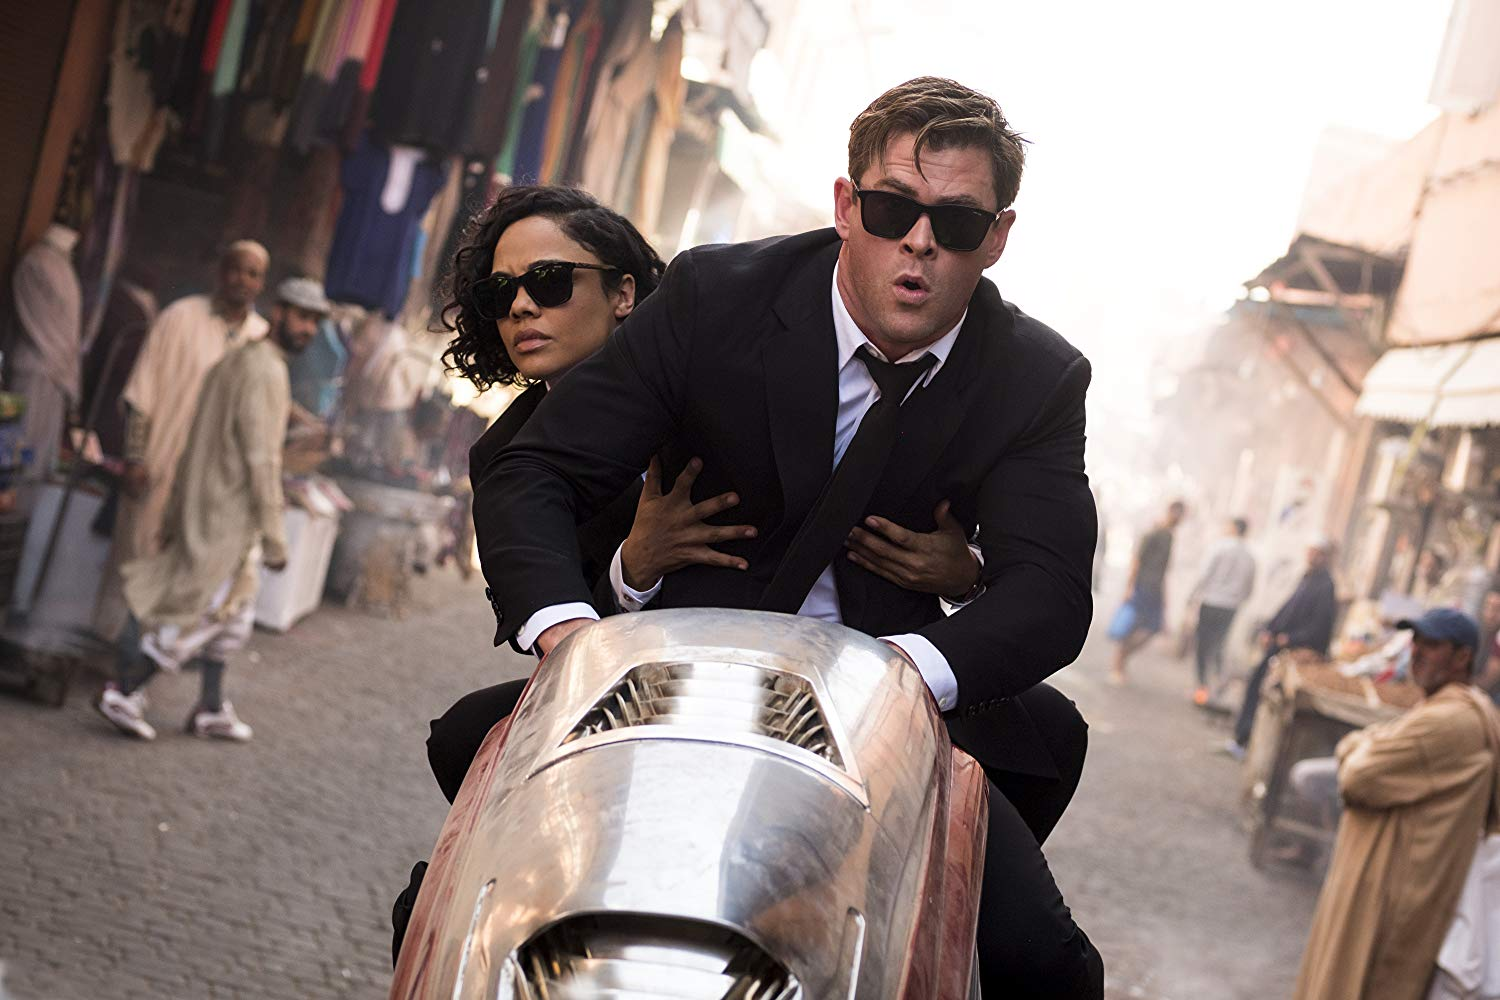 Men in Black: International is charming and fun but squanders the chance to tell a richer story